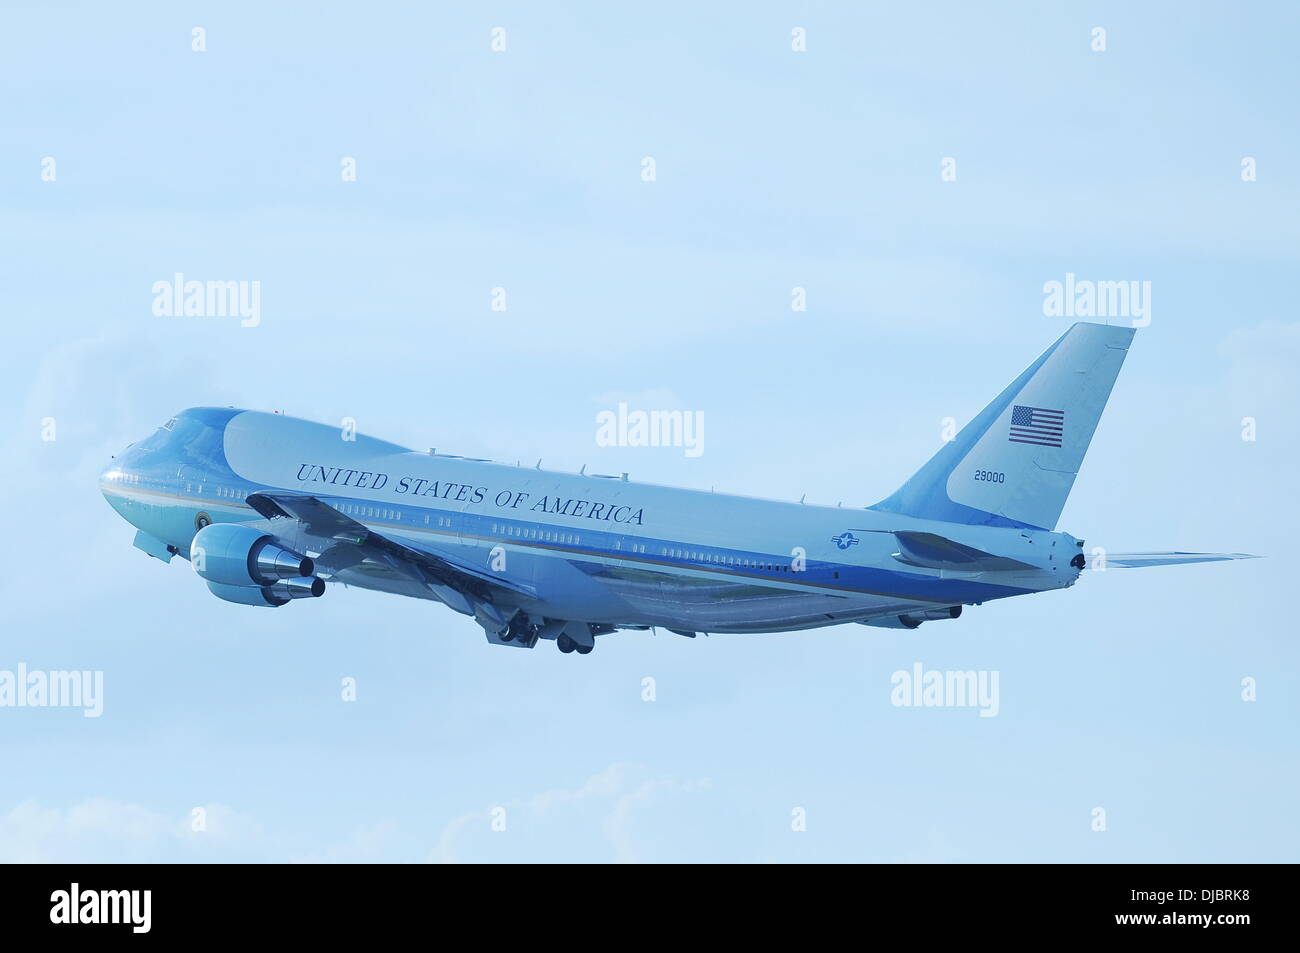 Air Force One, with U.S. President Barack Obama aboard, departs West Palm Beach International Airport following a campaign rally West Palm Beach, Florida - 09.09.12 - Stock Image